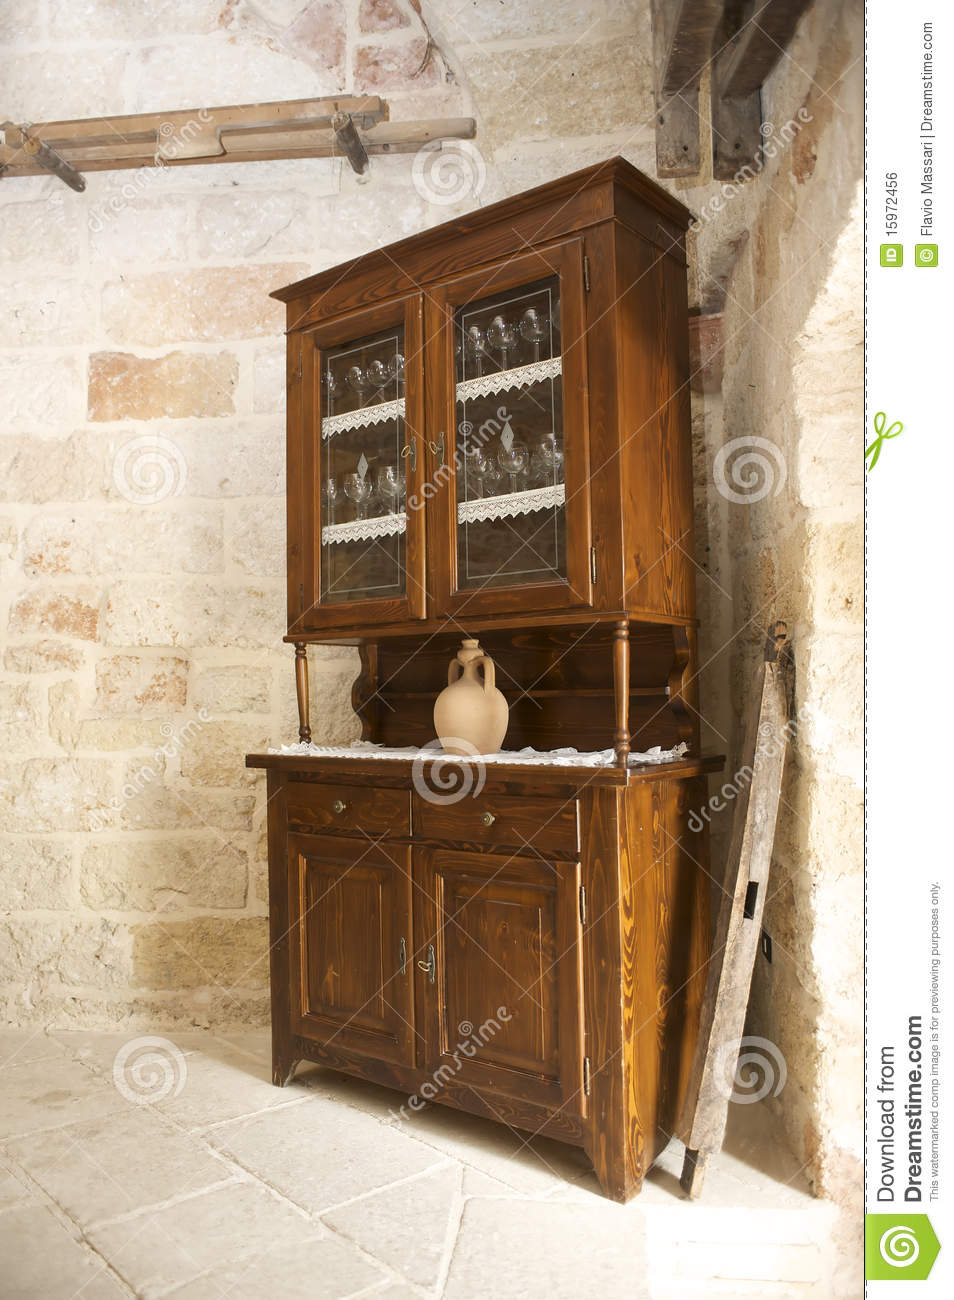 Old country style cabinet stock photo. Image of view - 15972456